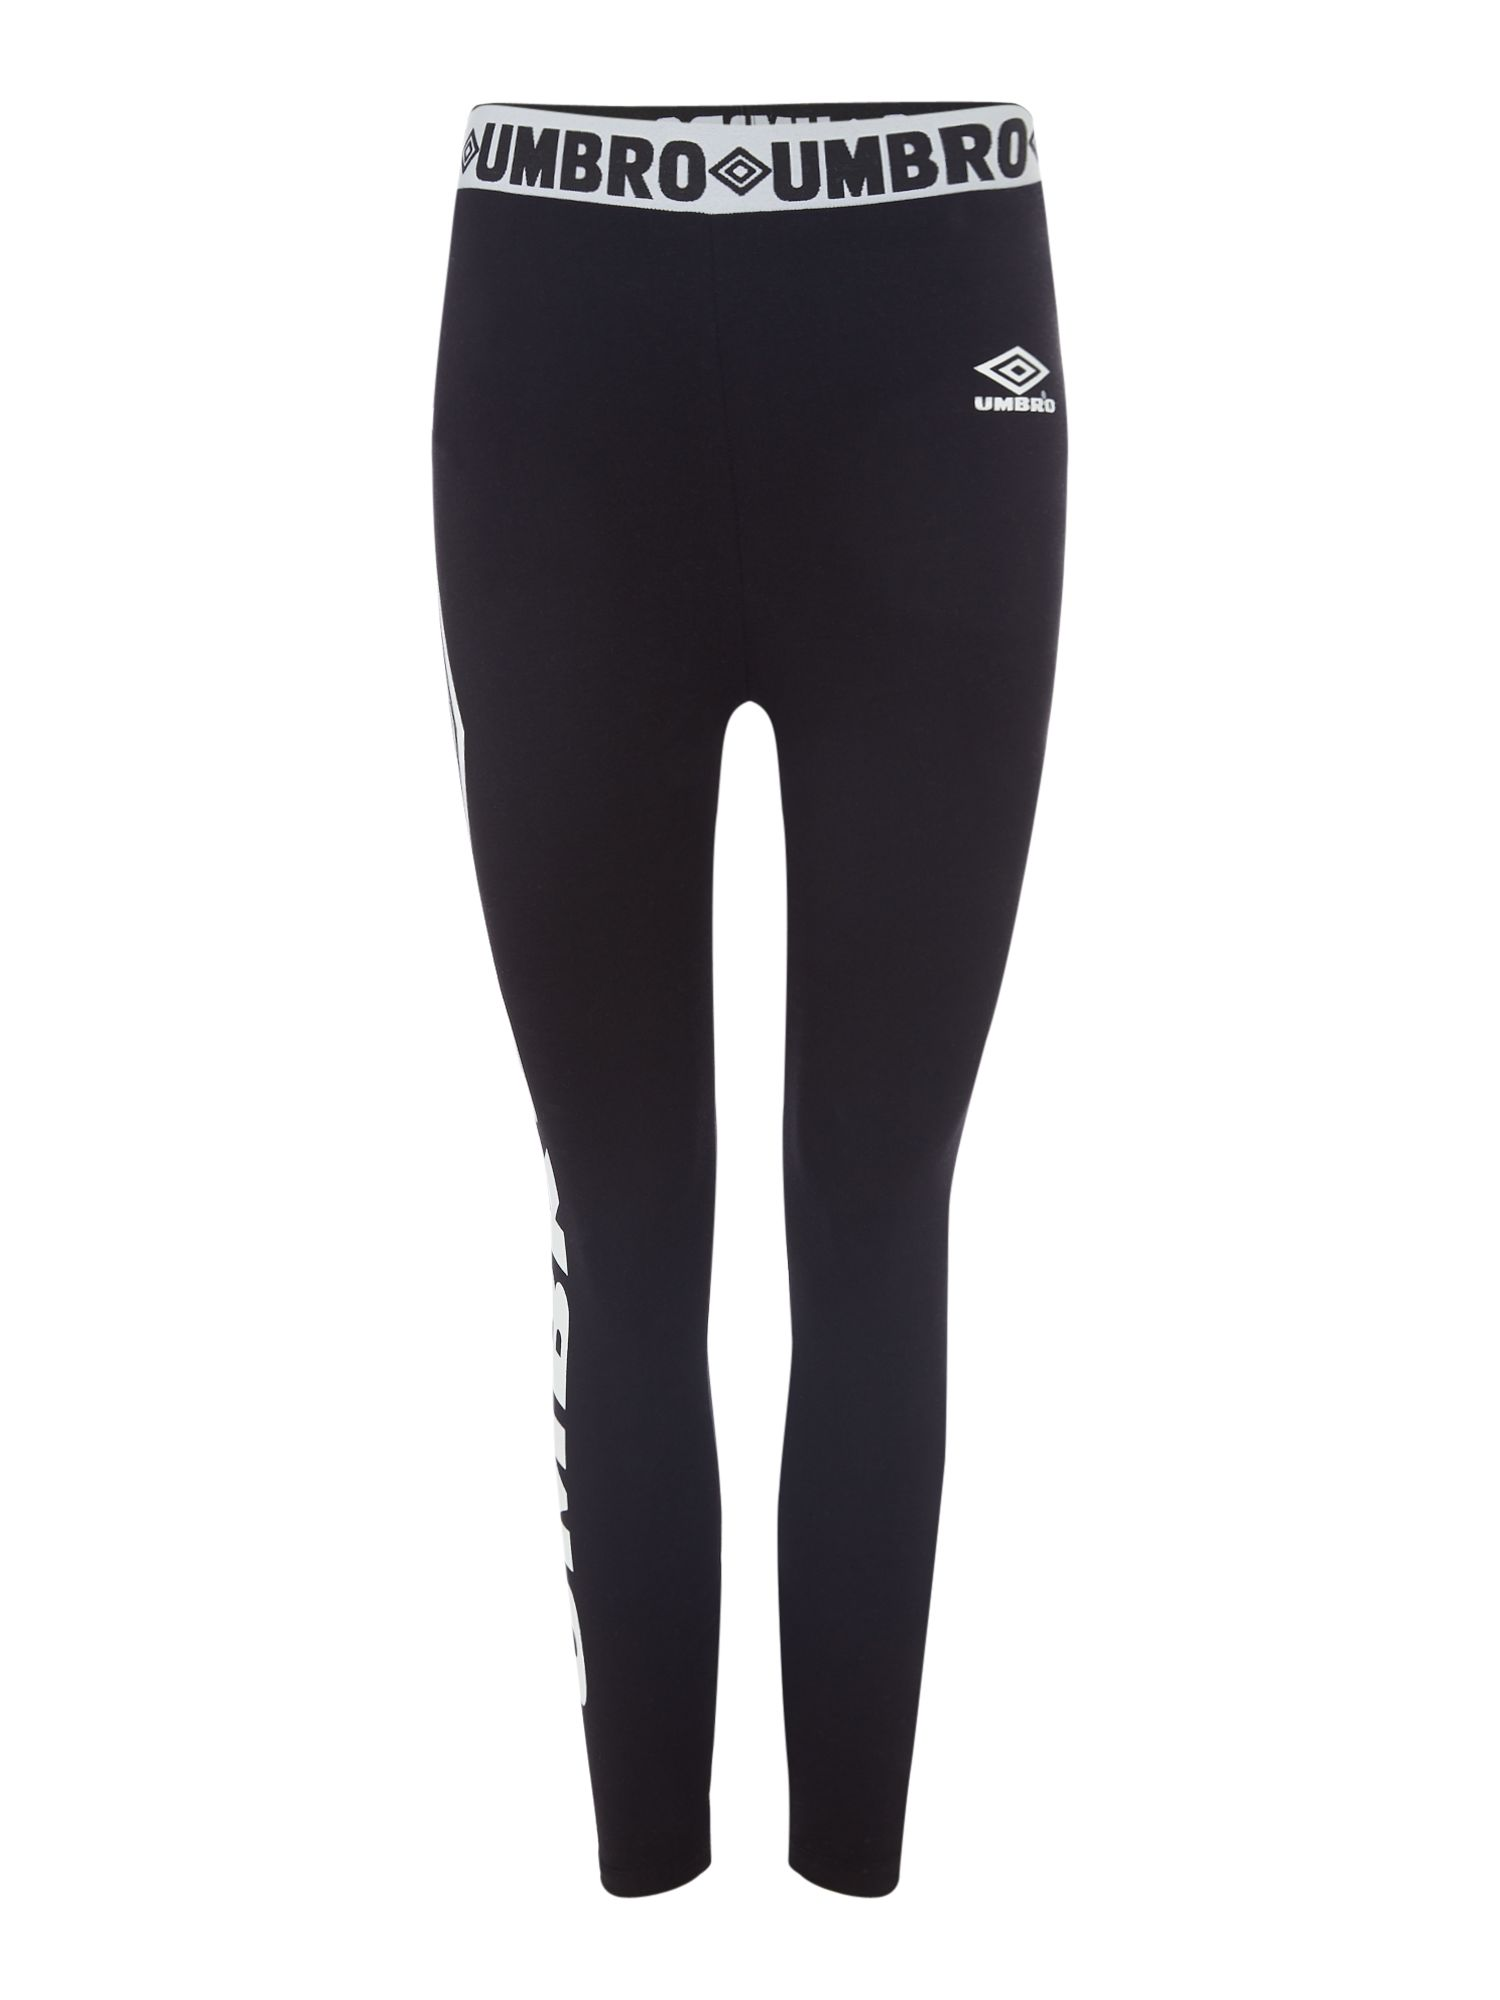 Umbro Large logo leggings, Black